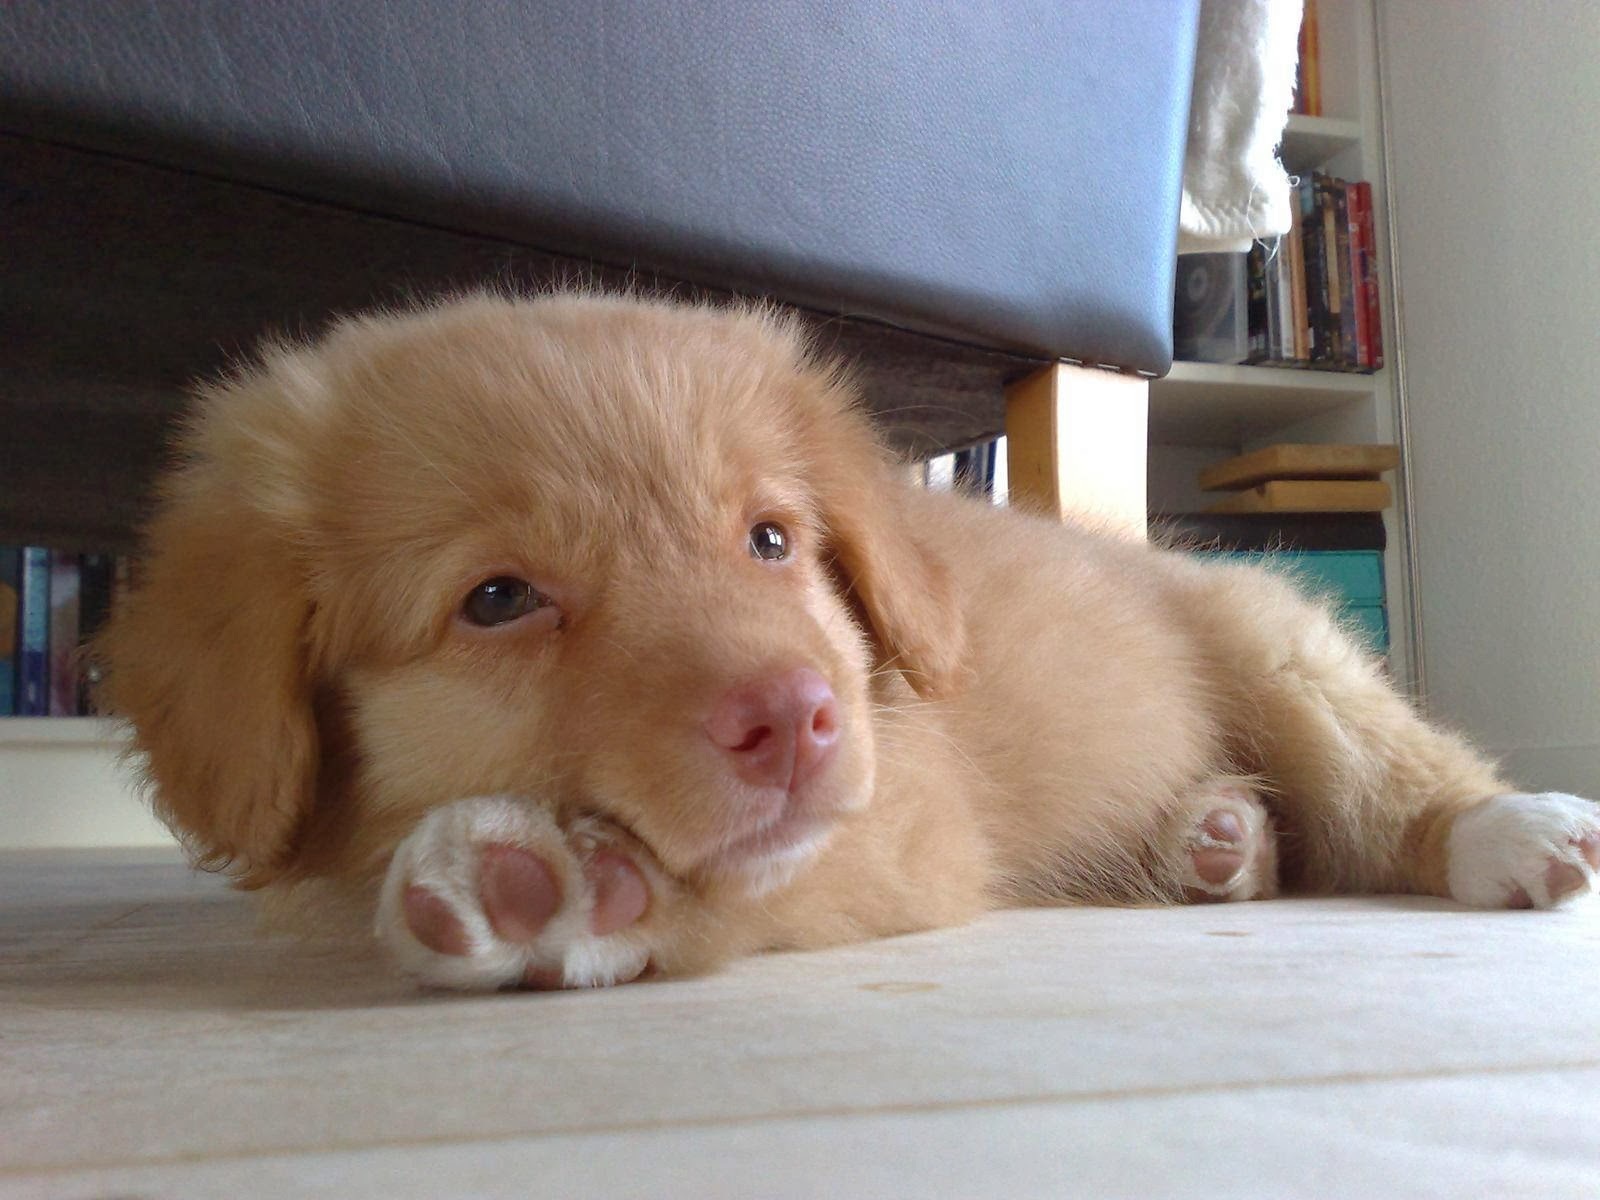 Cute dogs - part 8 (50 pics), cute puppy lays on floor